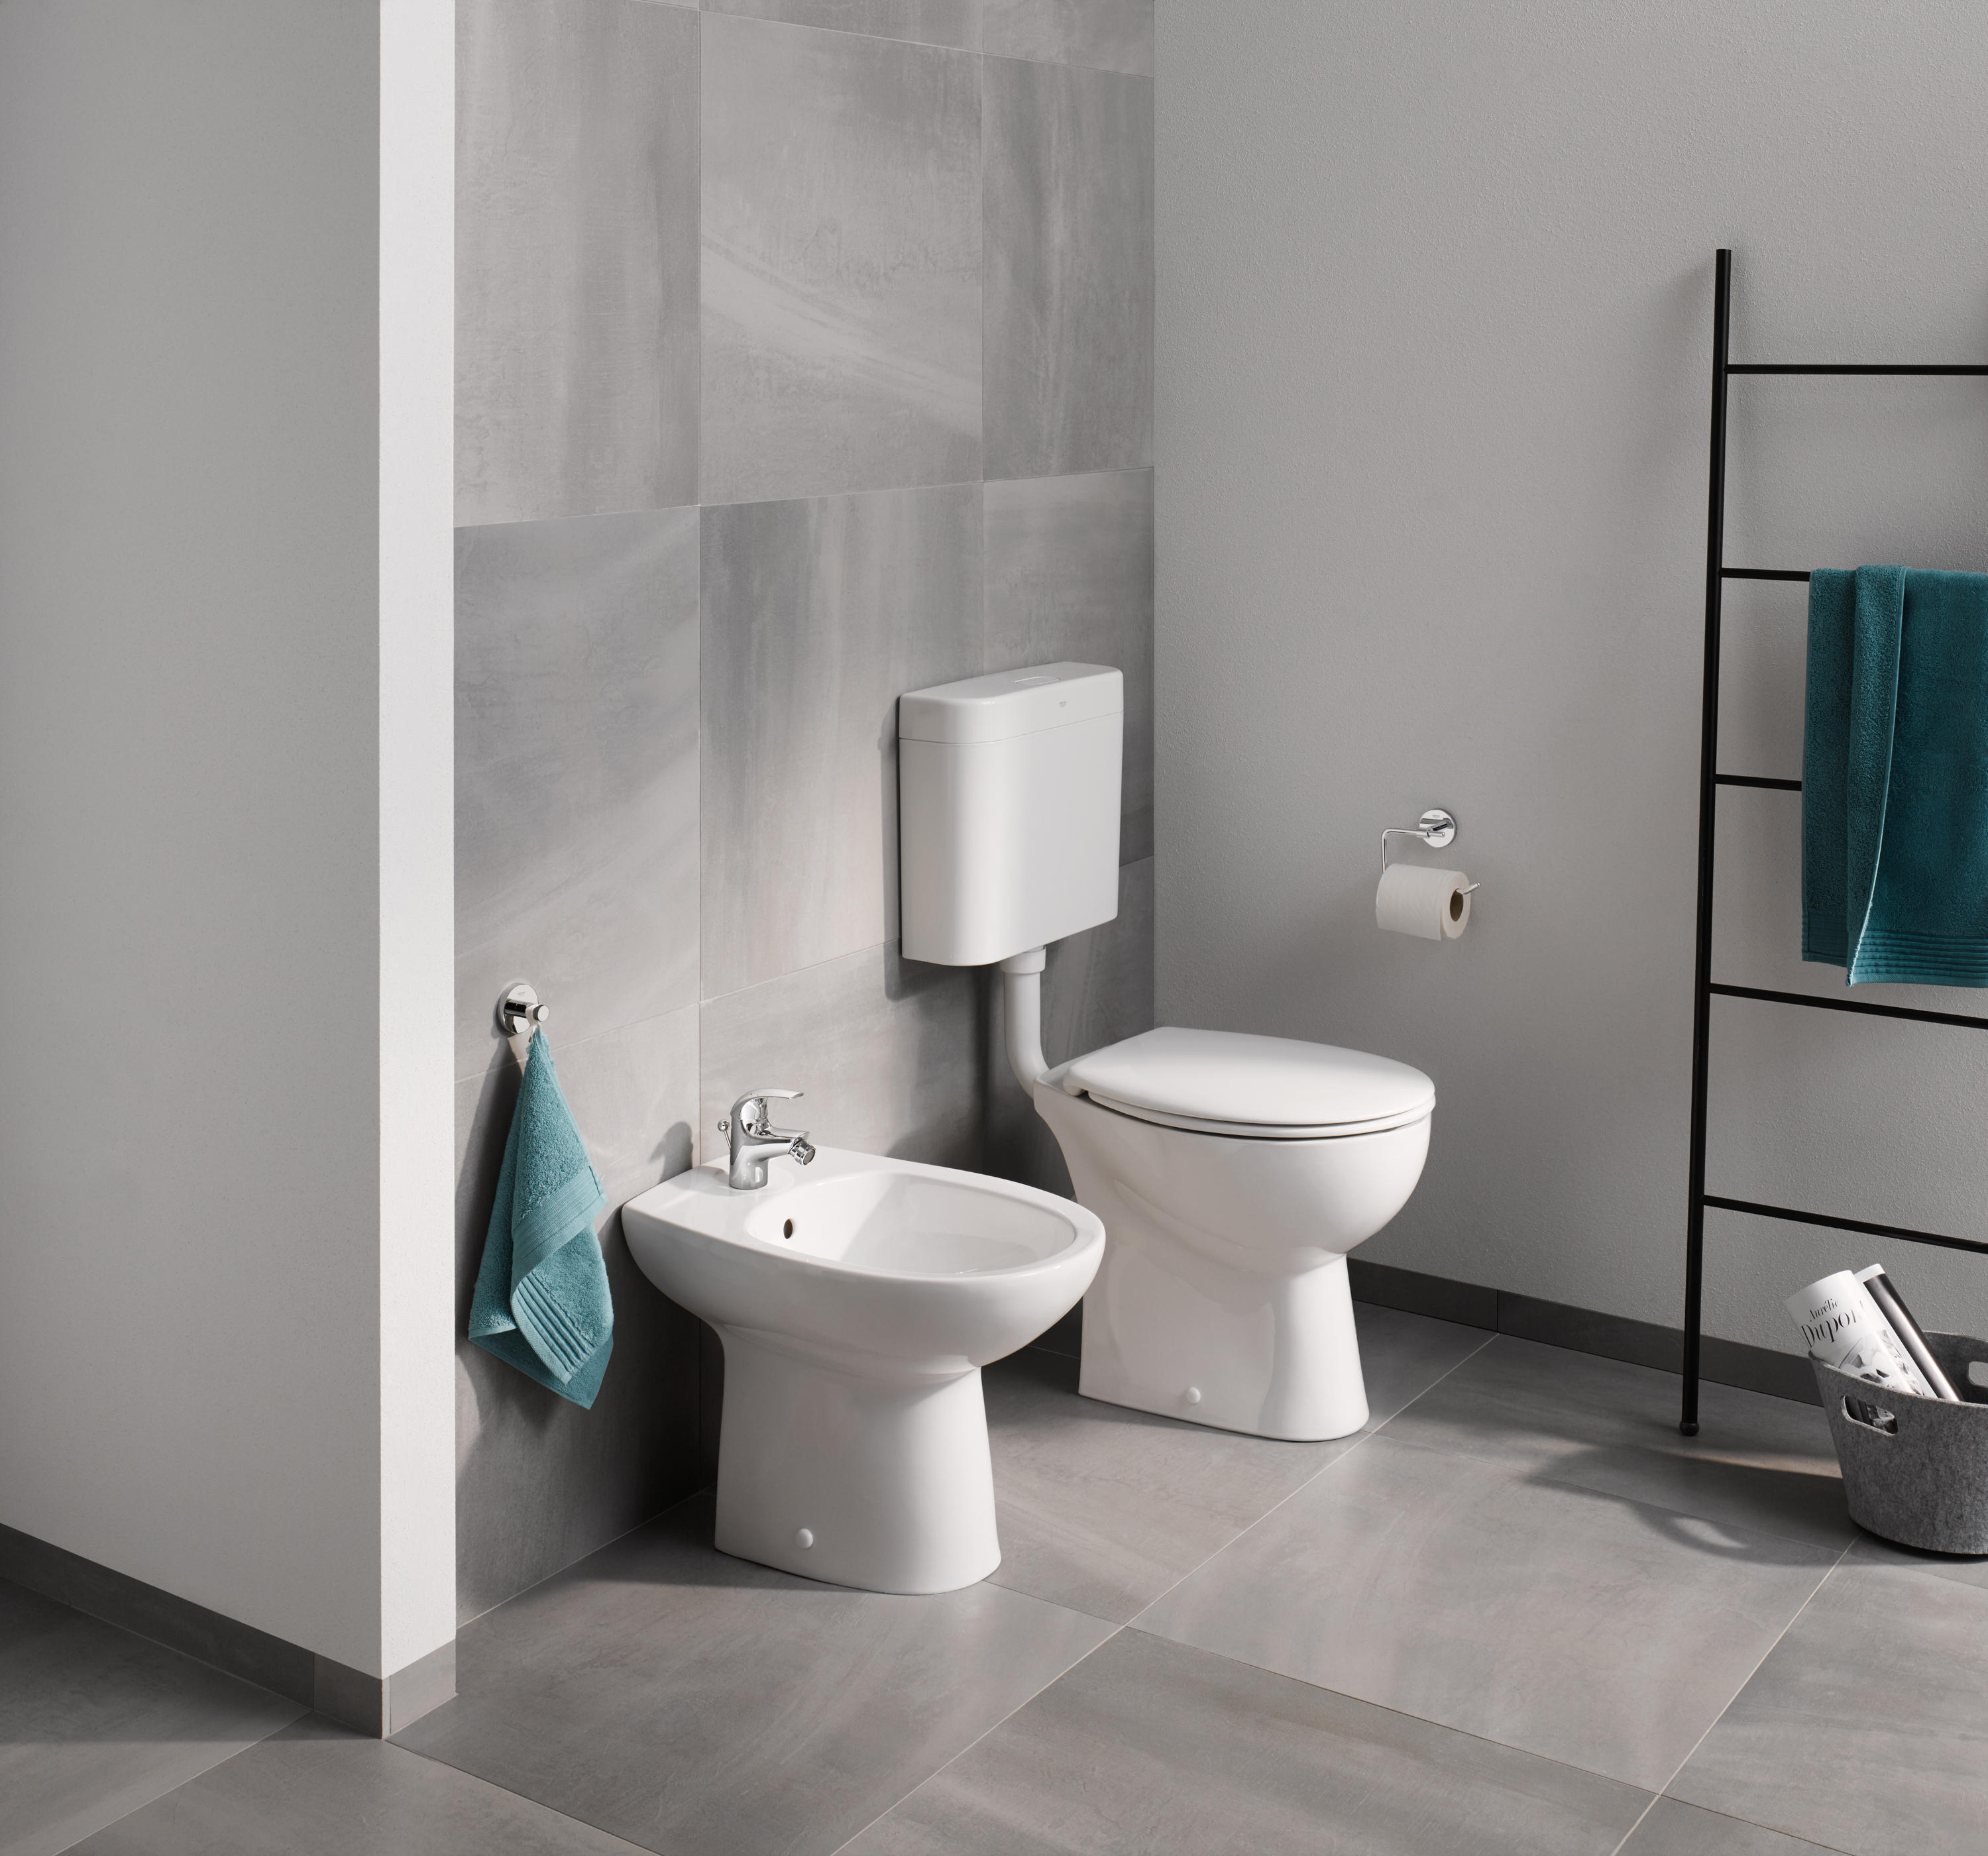 Sanitarios Grohe Bau Ceramic Wc Wall Hung Inodoros De Grohe Architonic